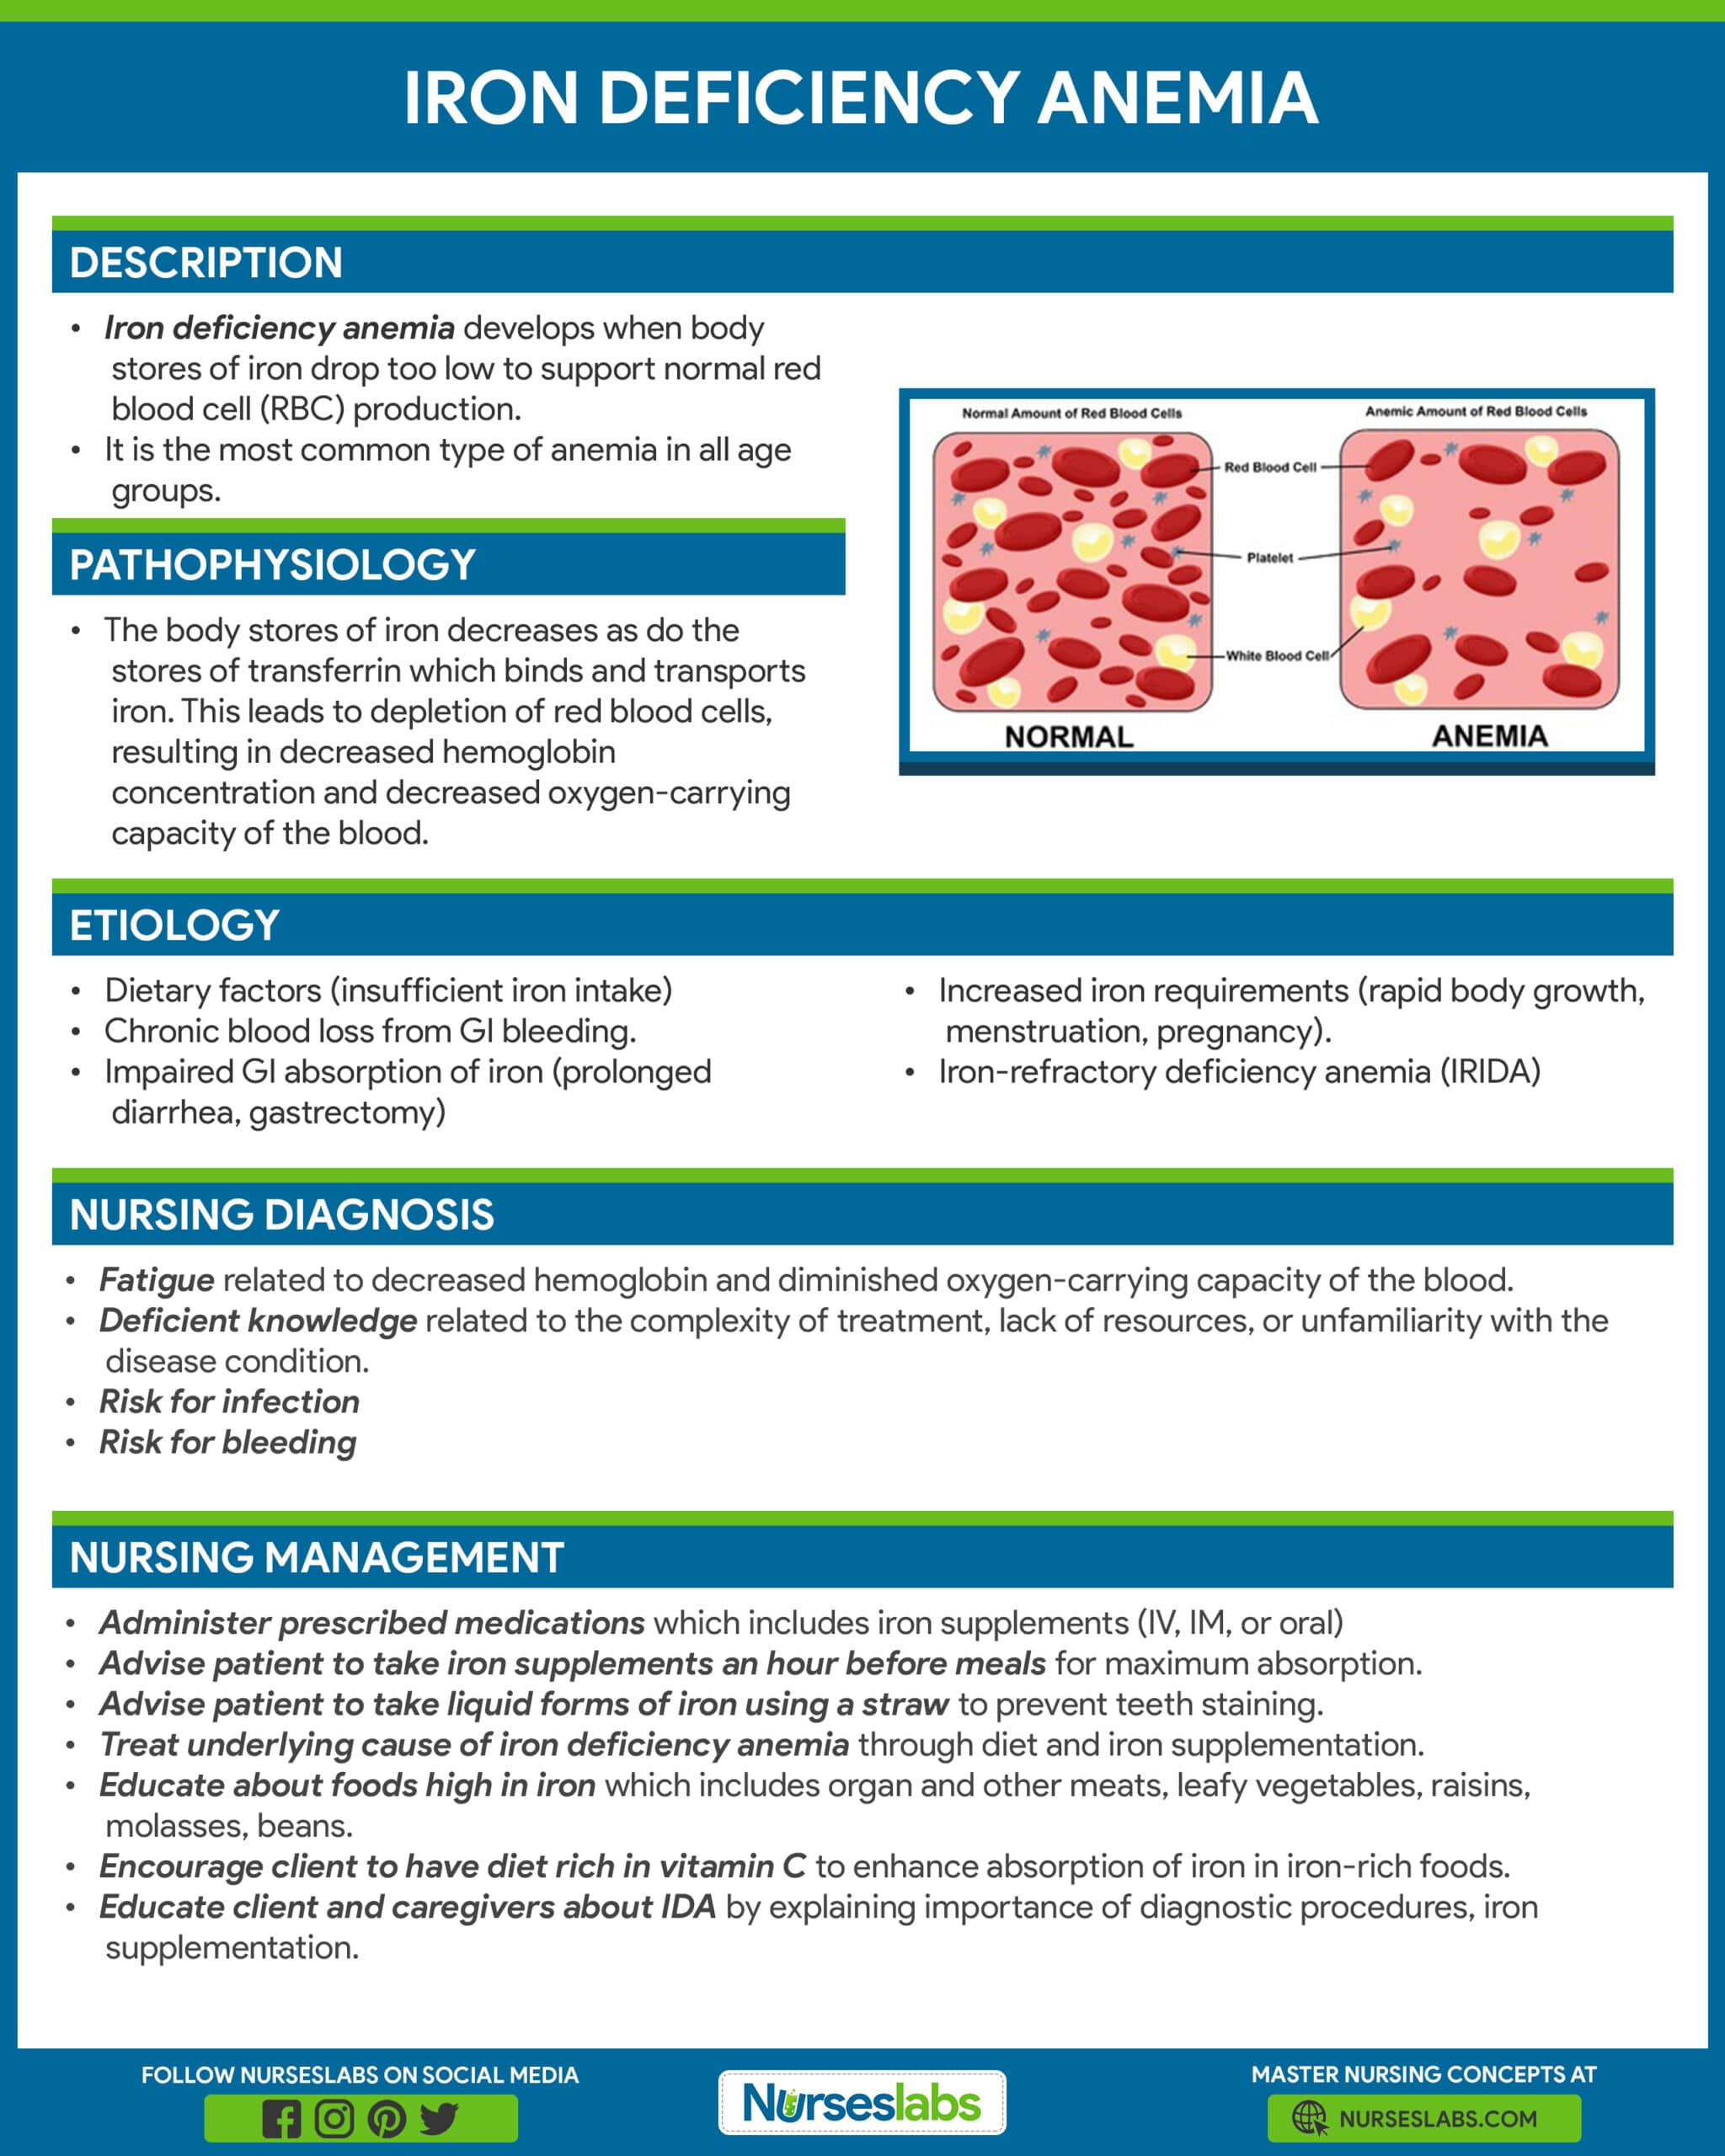 Iron Deficiency Anemia Nursing Care Management and Study Guide Infographic and Poster